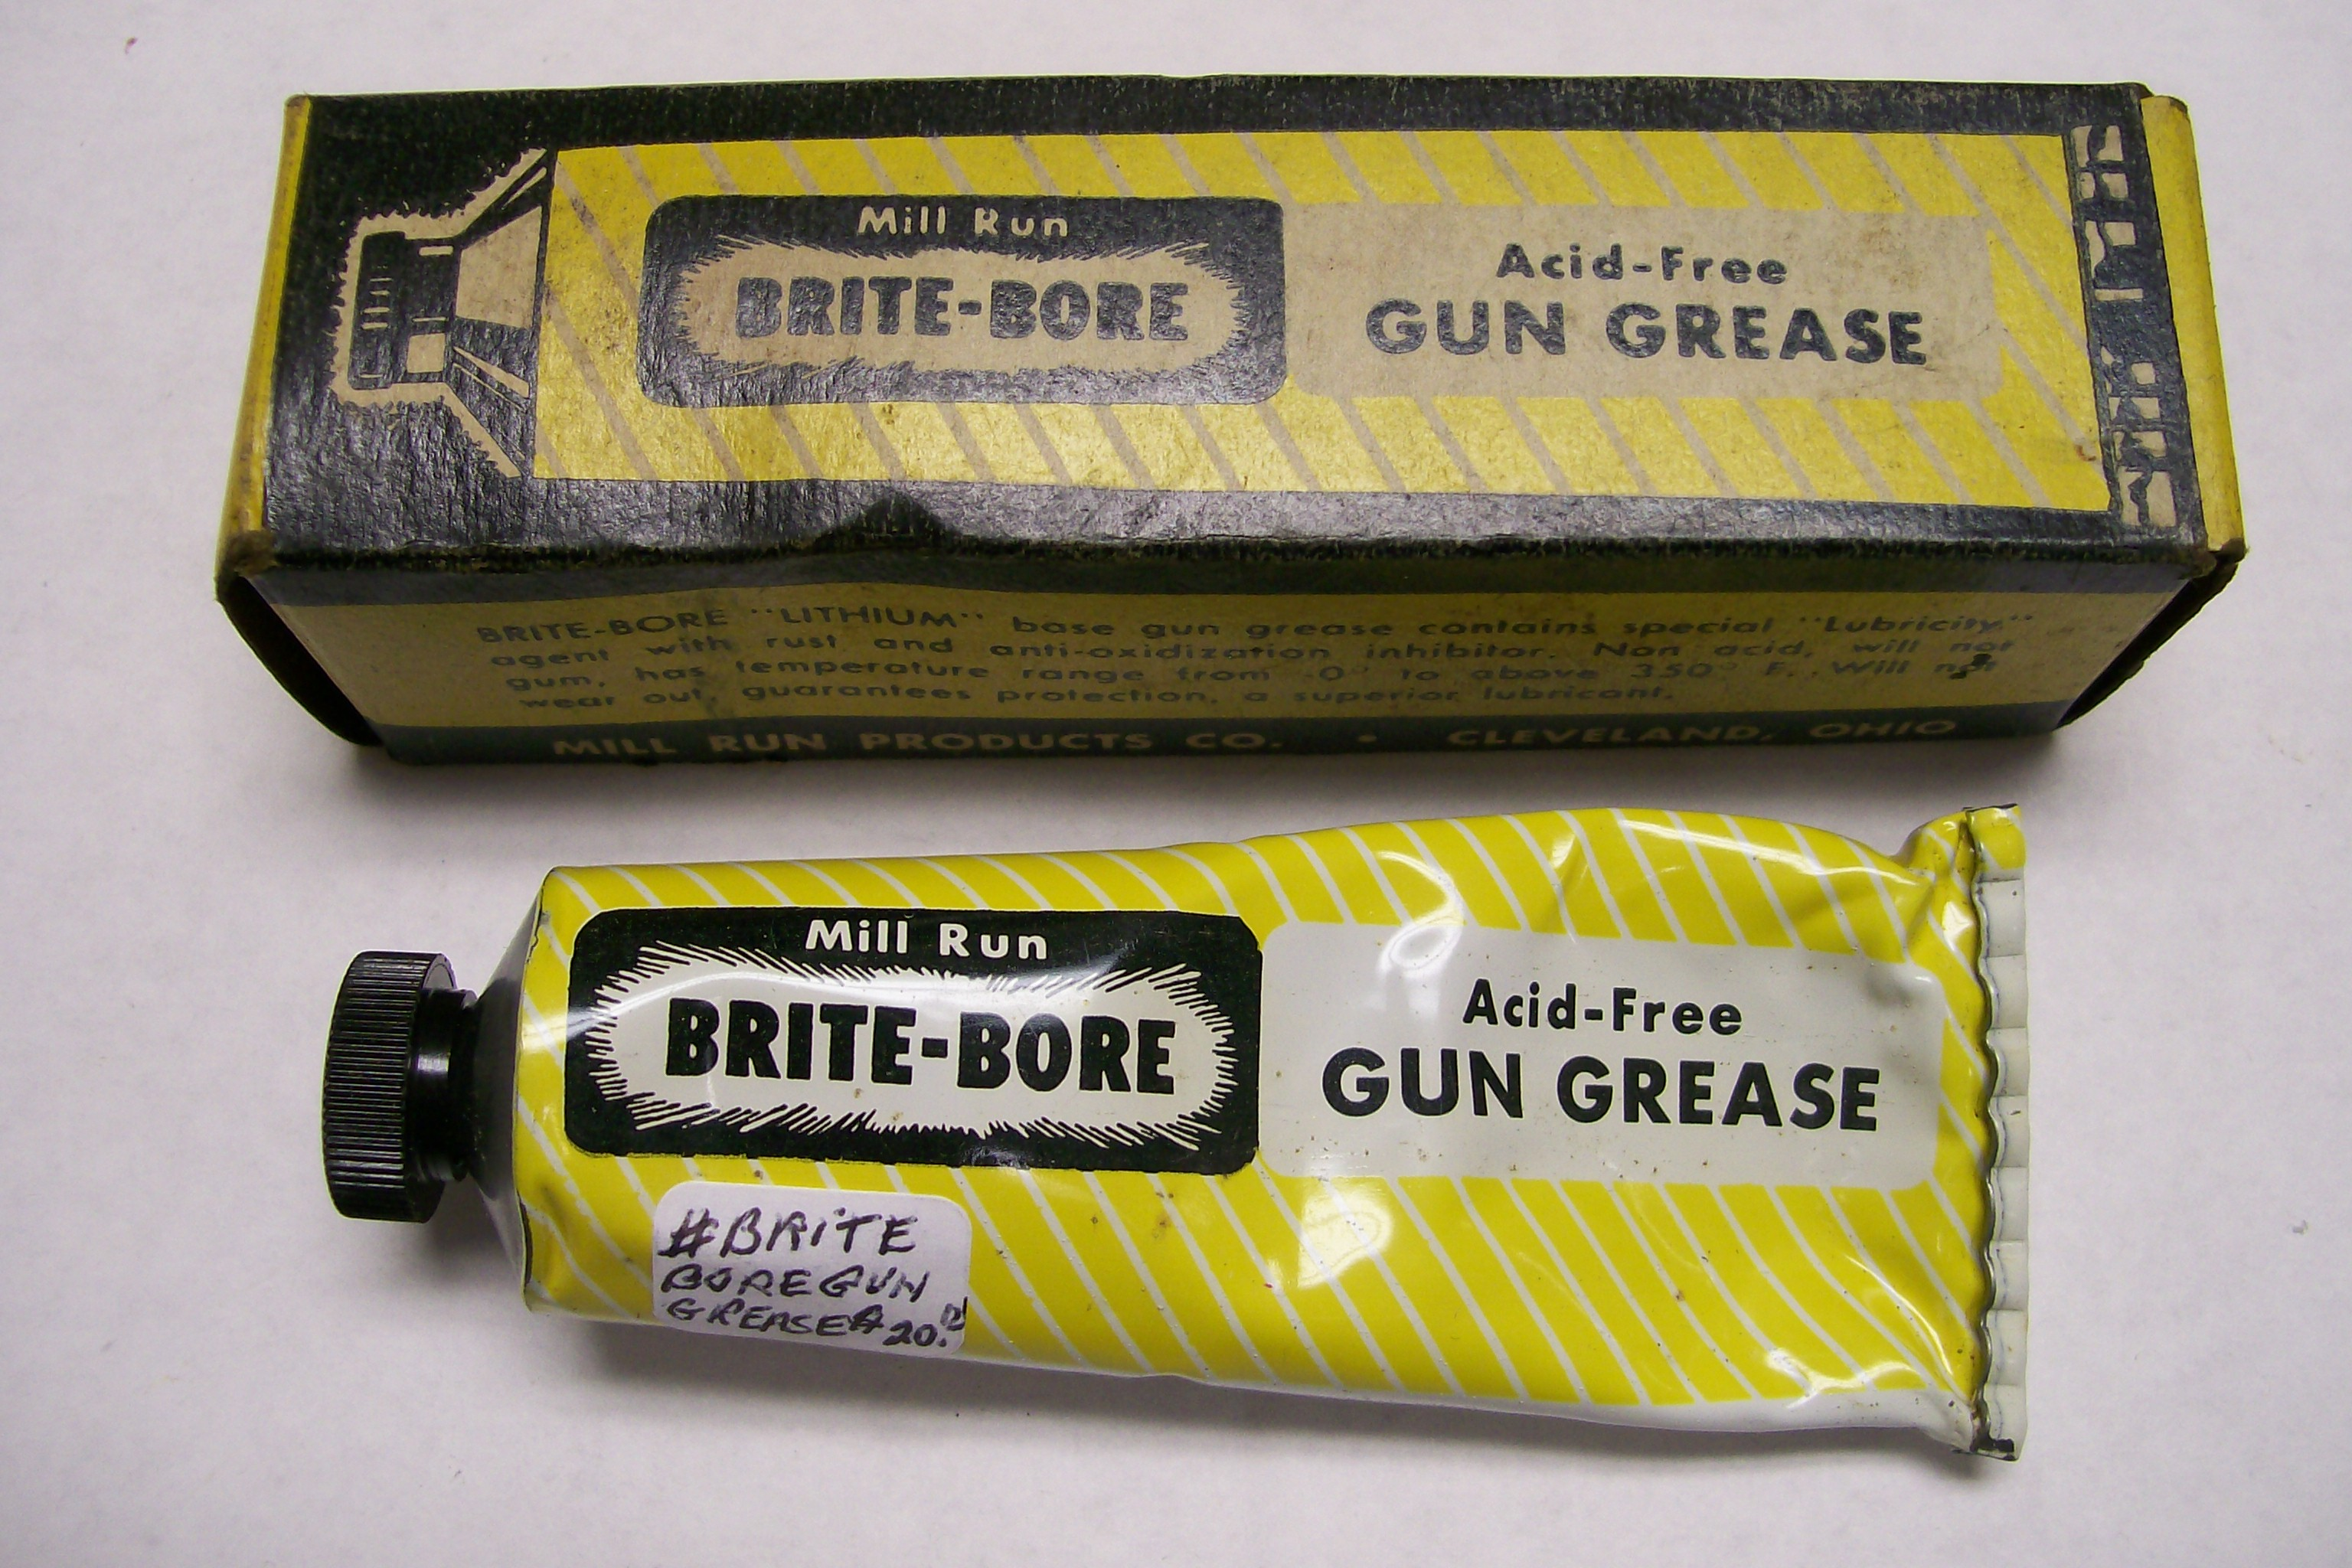 Mill Run Products Brite-Bore Gun Grease Cleveland, Ohio